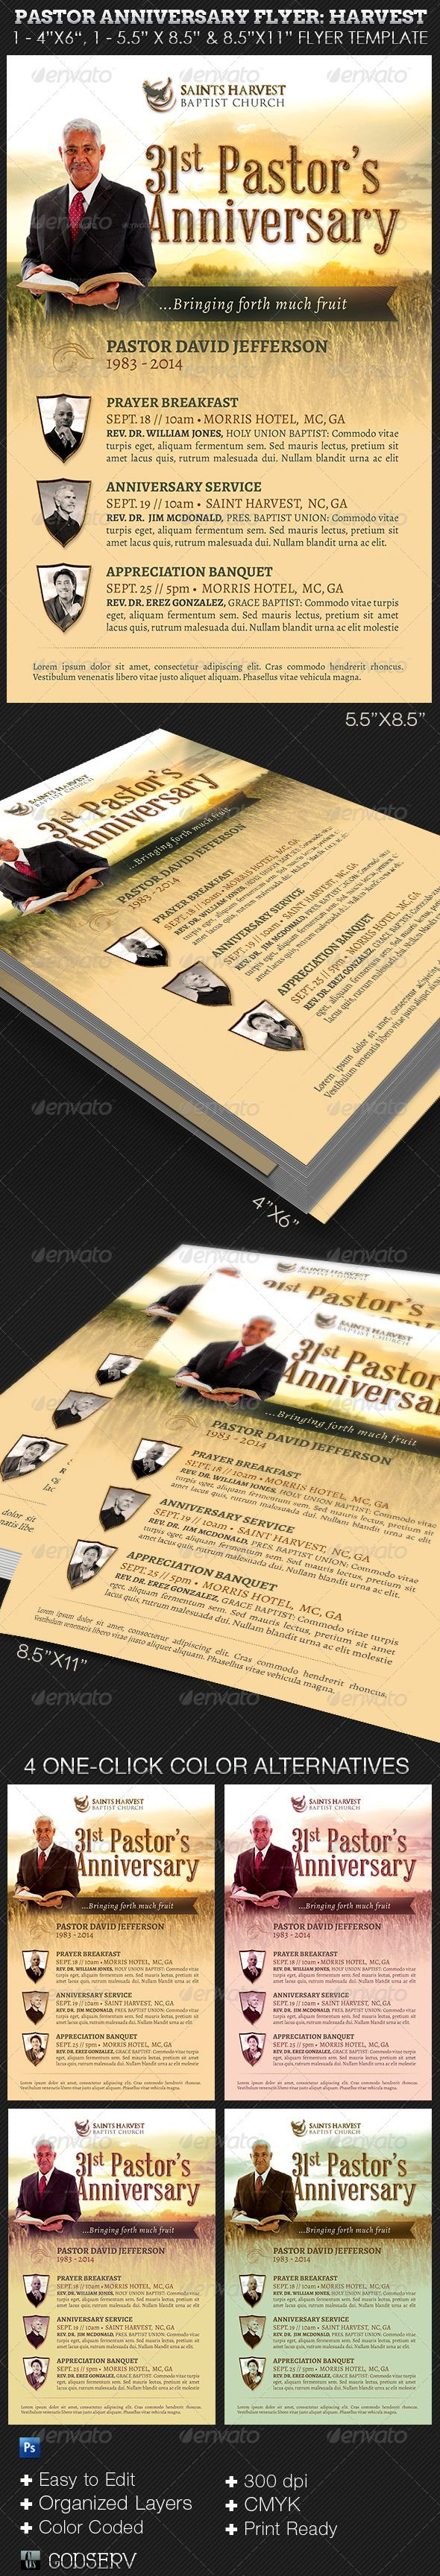 best images about church print samples program pastor anniversary church flyer template harvest 6 00 the pastor anniversary events flyer harvest